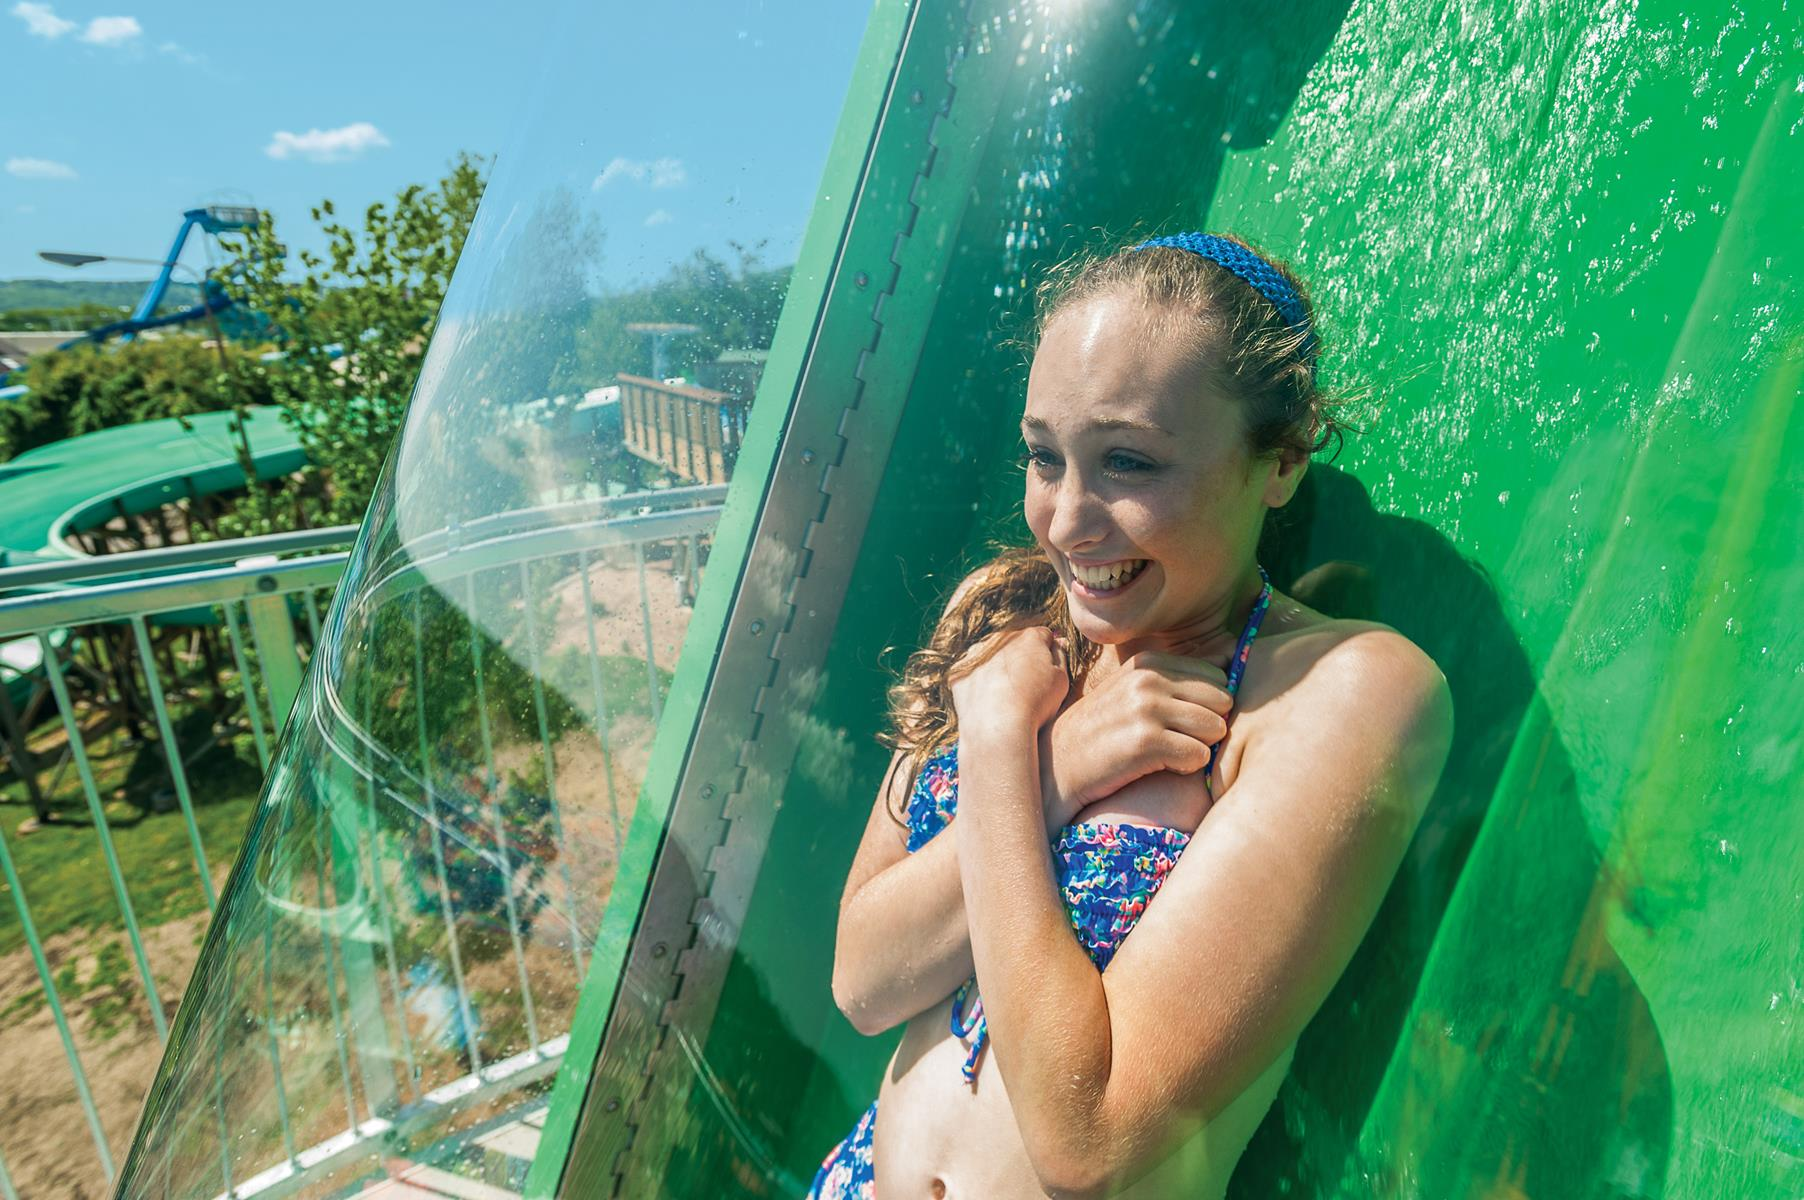 10 Great Midwestern Waterparks to Get Your Wet On